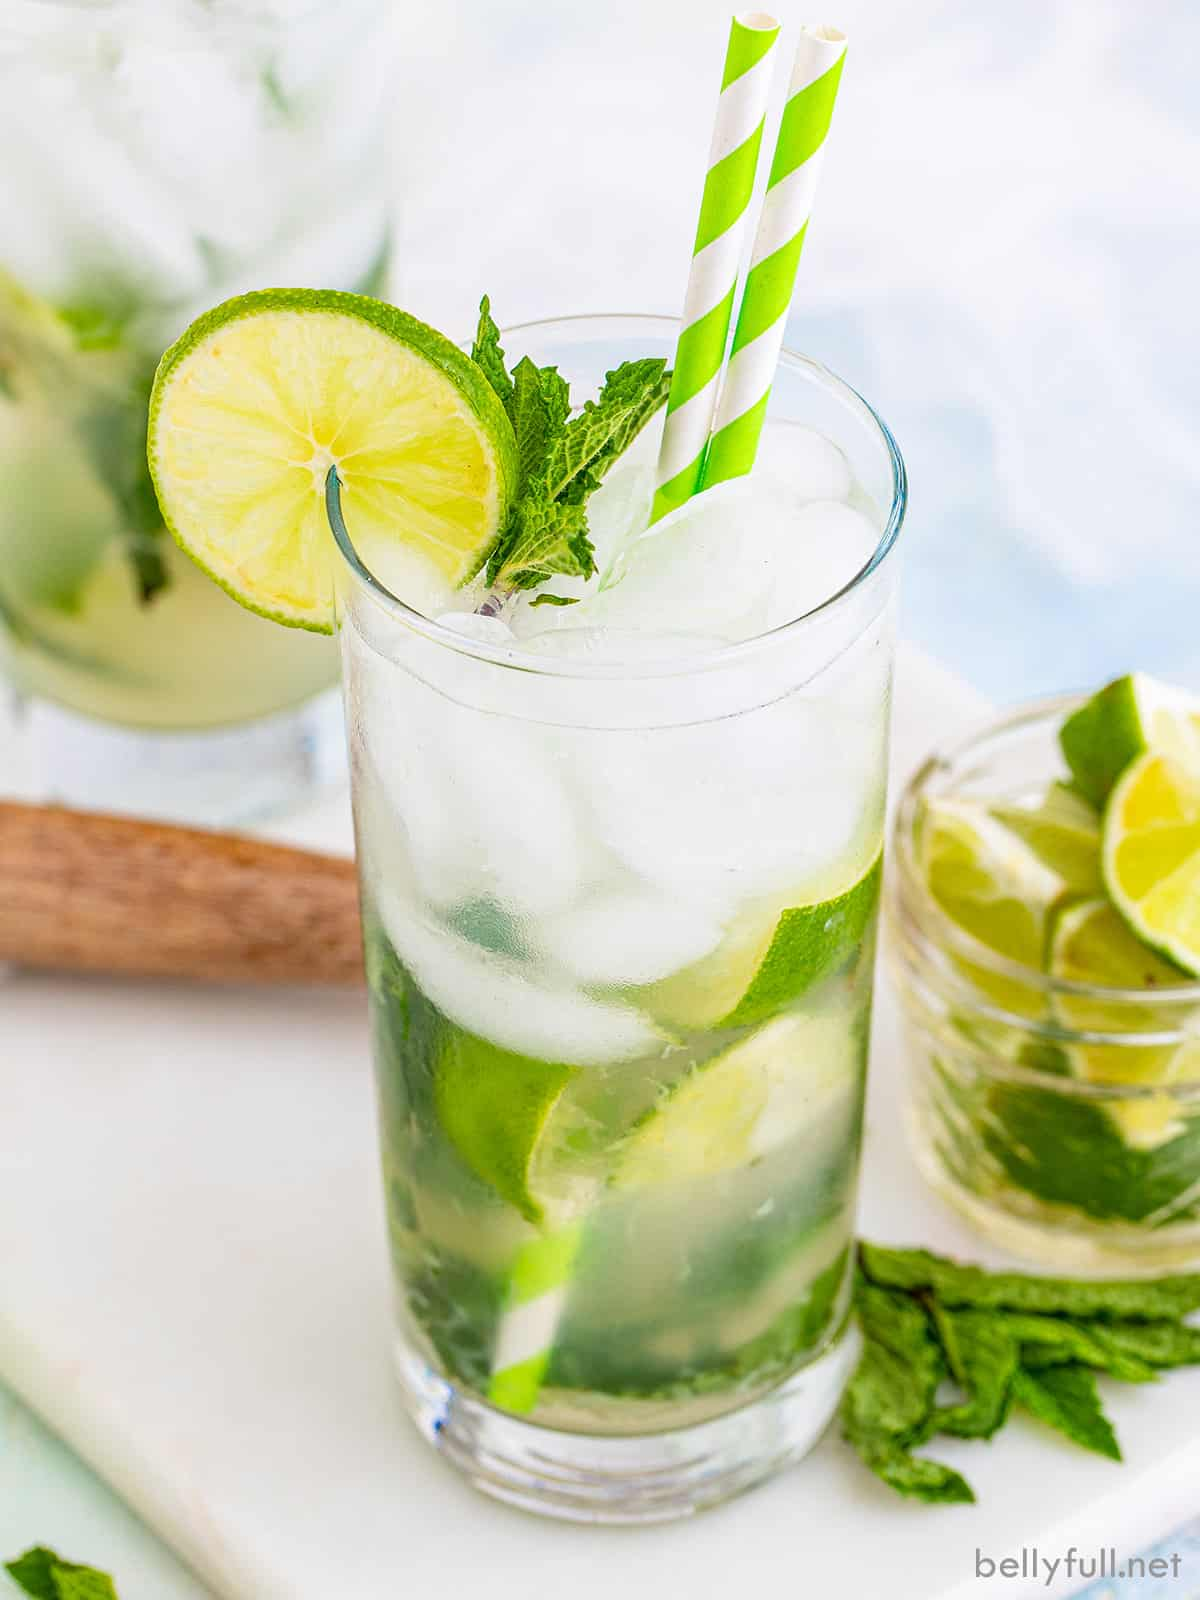 A classic mojito adorned with a green and white straw